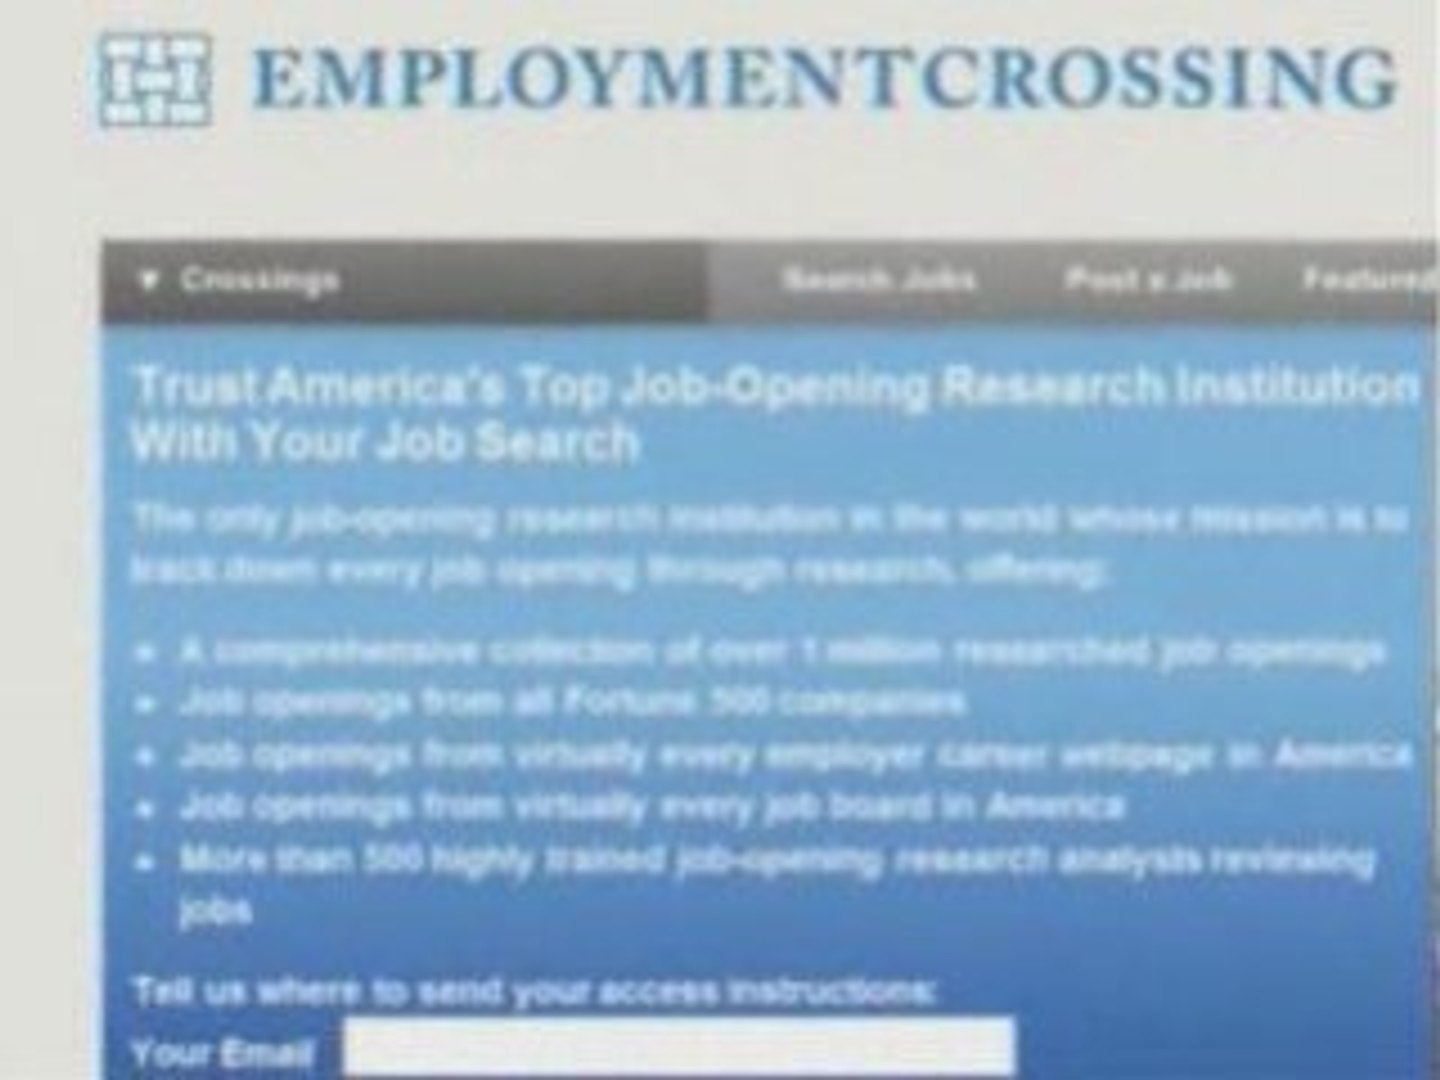 Education Research Jobs, Education Careers, Researching Jobs